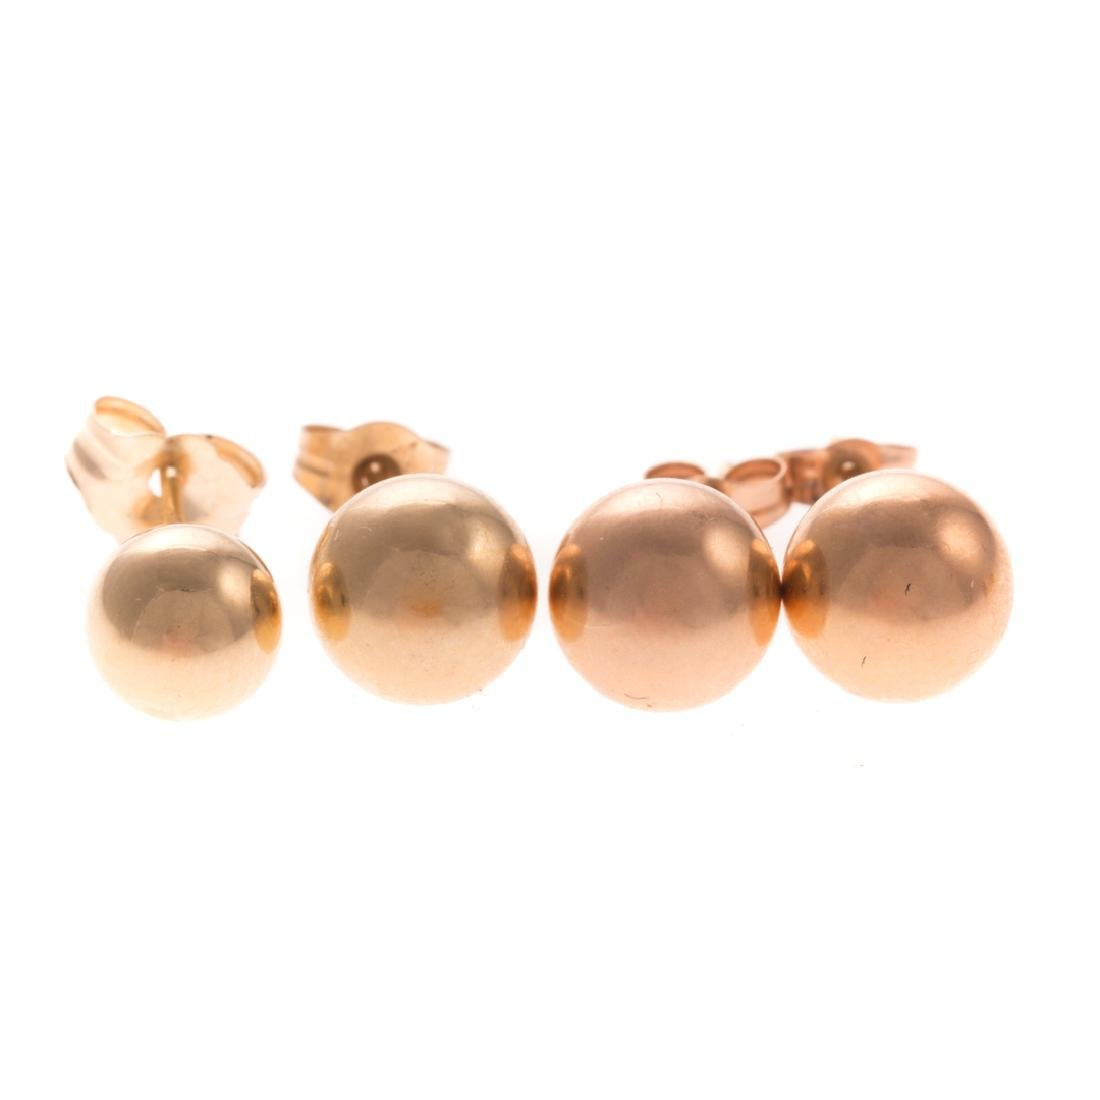 A Collection of Lady's Studs in 14K Gold - 4